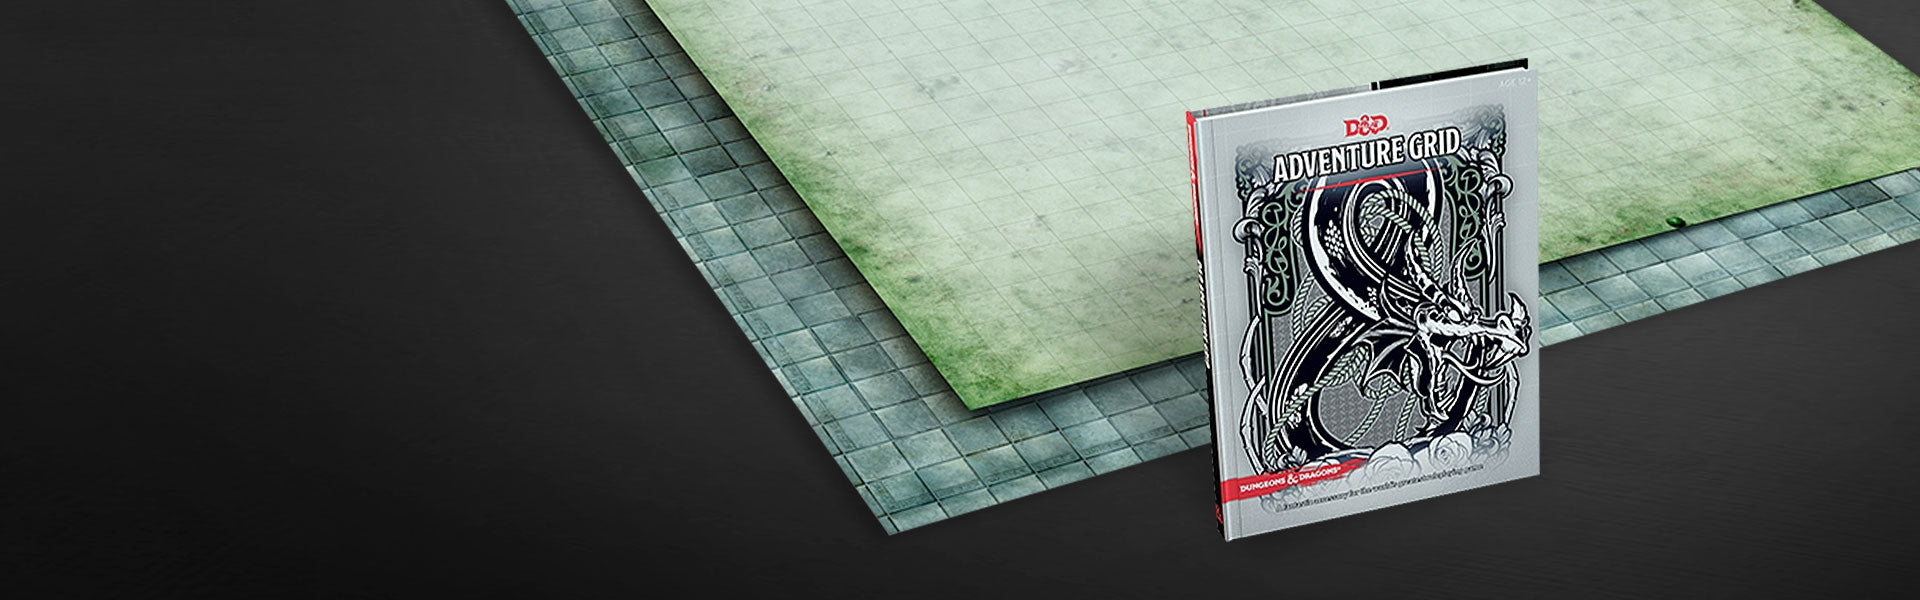 Dungeons and Dragons RPG: Adventure Grid